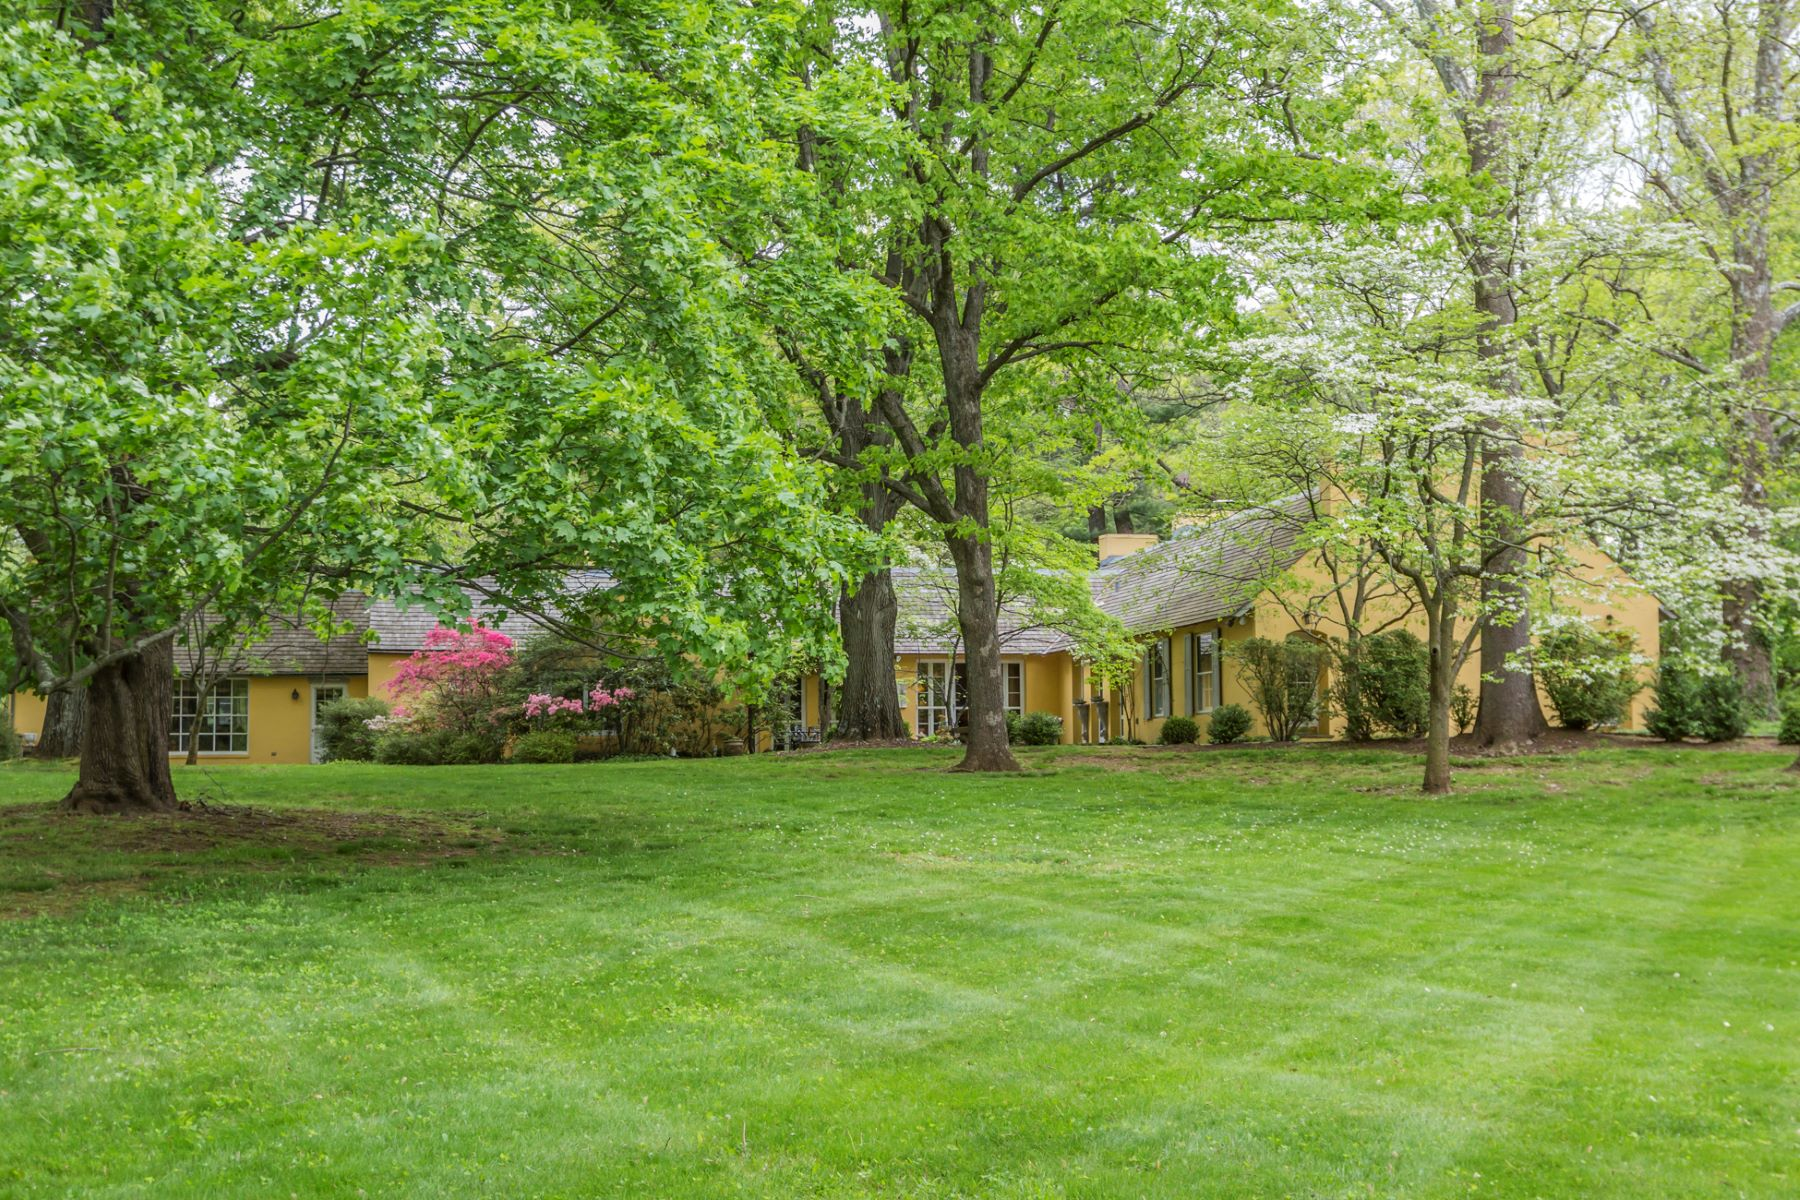 Eensgezinswoning voor Verkoop een t Secluded European Estate Setting - Lawrence Township 44 Fackler Road, Princeton, New Jersey 08540 Verenigde StatenIn/Rond: Lawrence Township